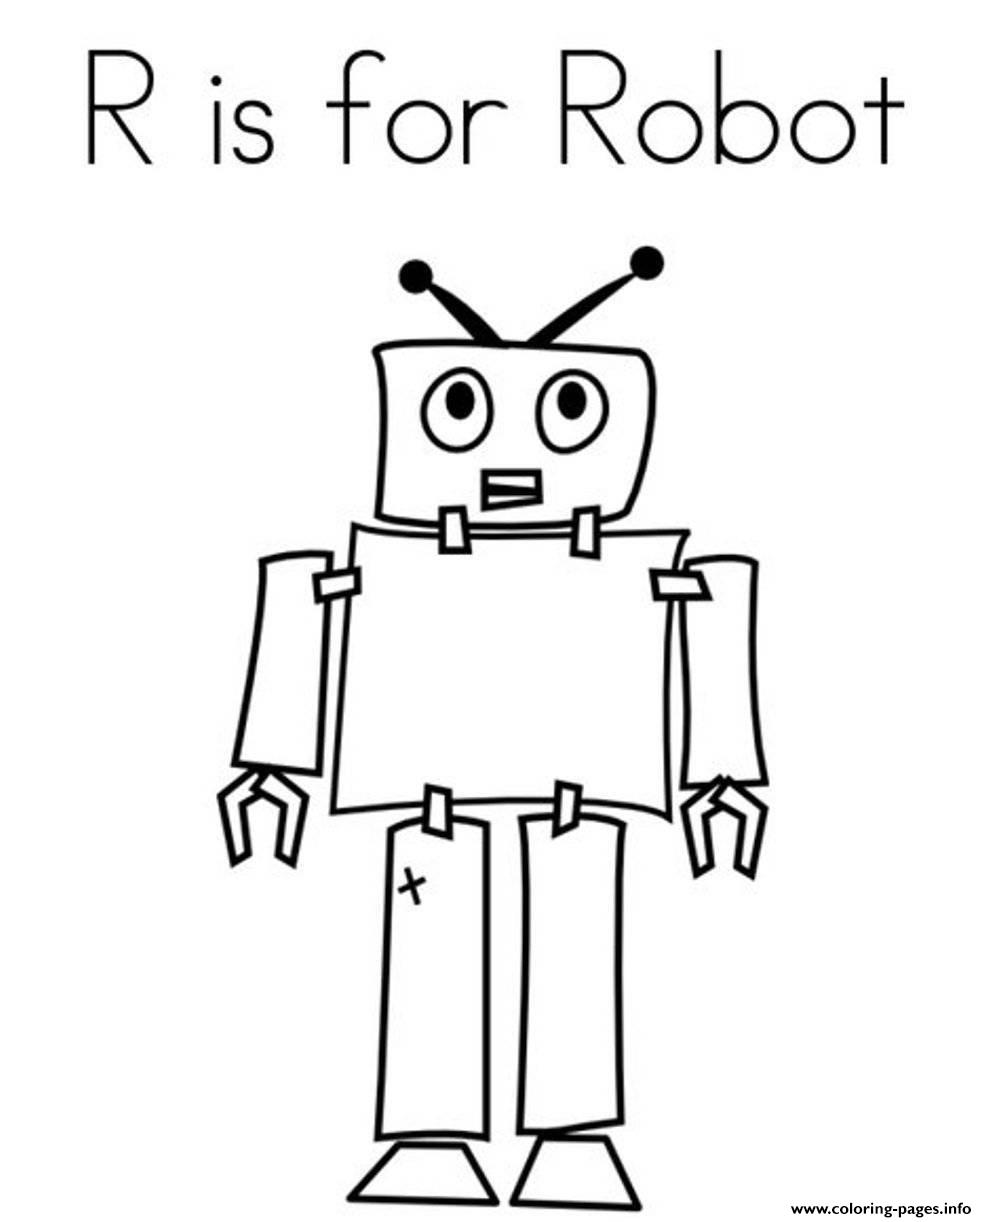 R is for Robot Coloring Page  E  Busy Mind  Pinterest